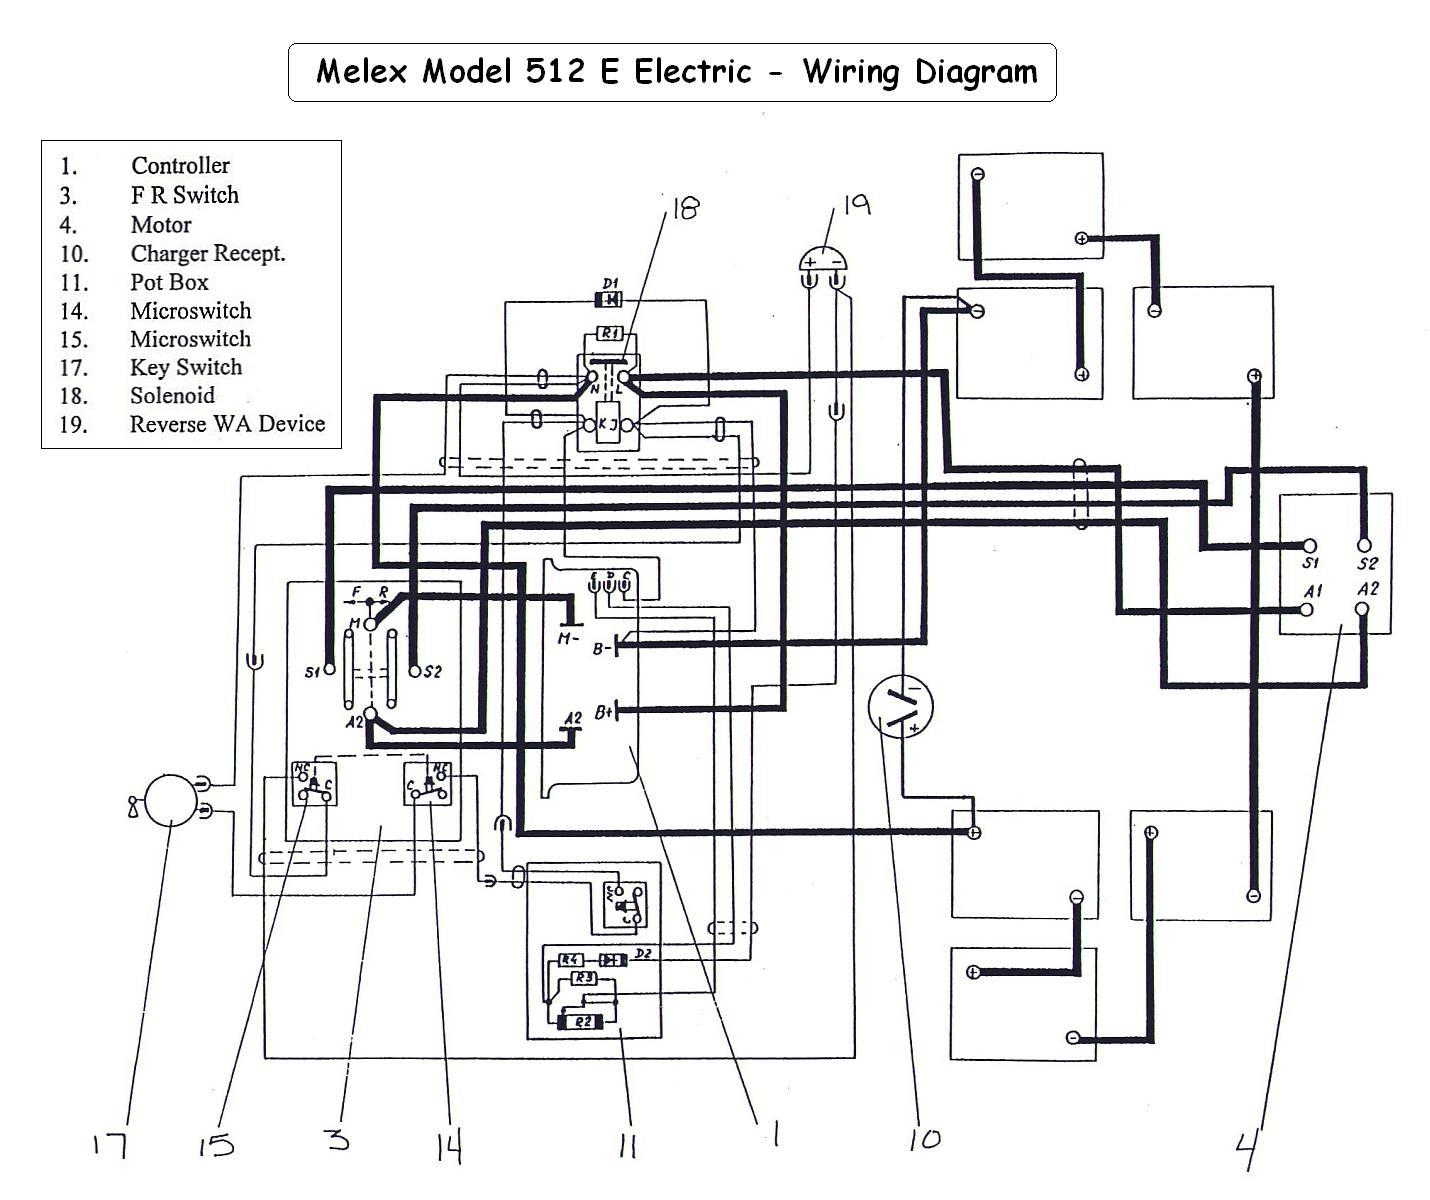 hight resolution of golf cart electrical diagram wiring diagram origin 36 volt ezgo wiring diagram 1986 yamaha 48 volt golf cart wiring diagram for controller